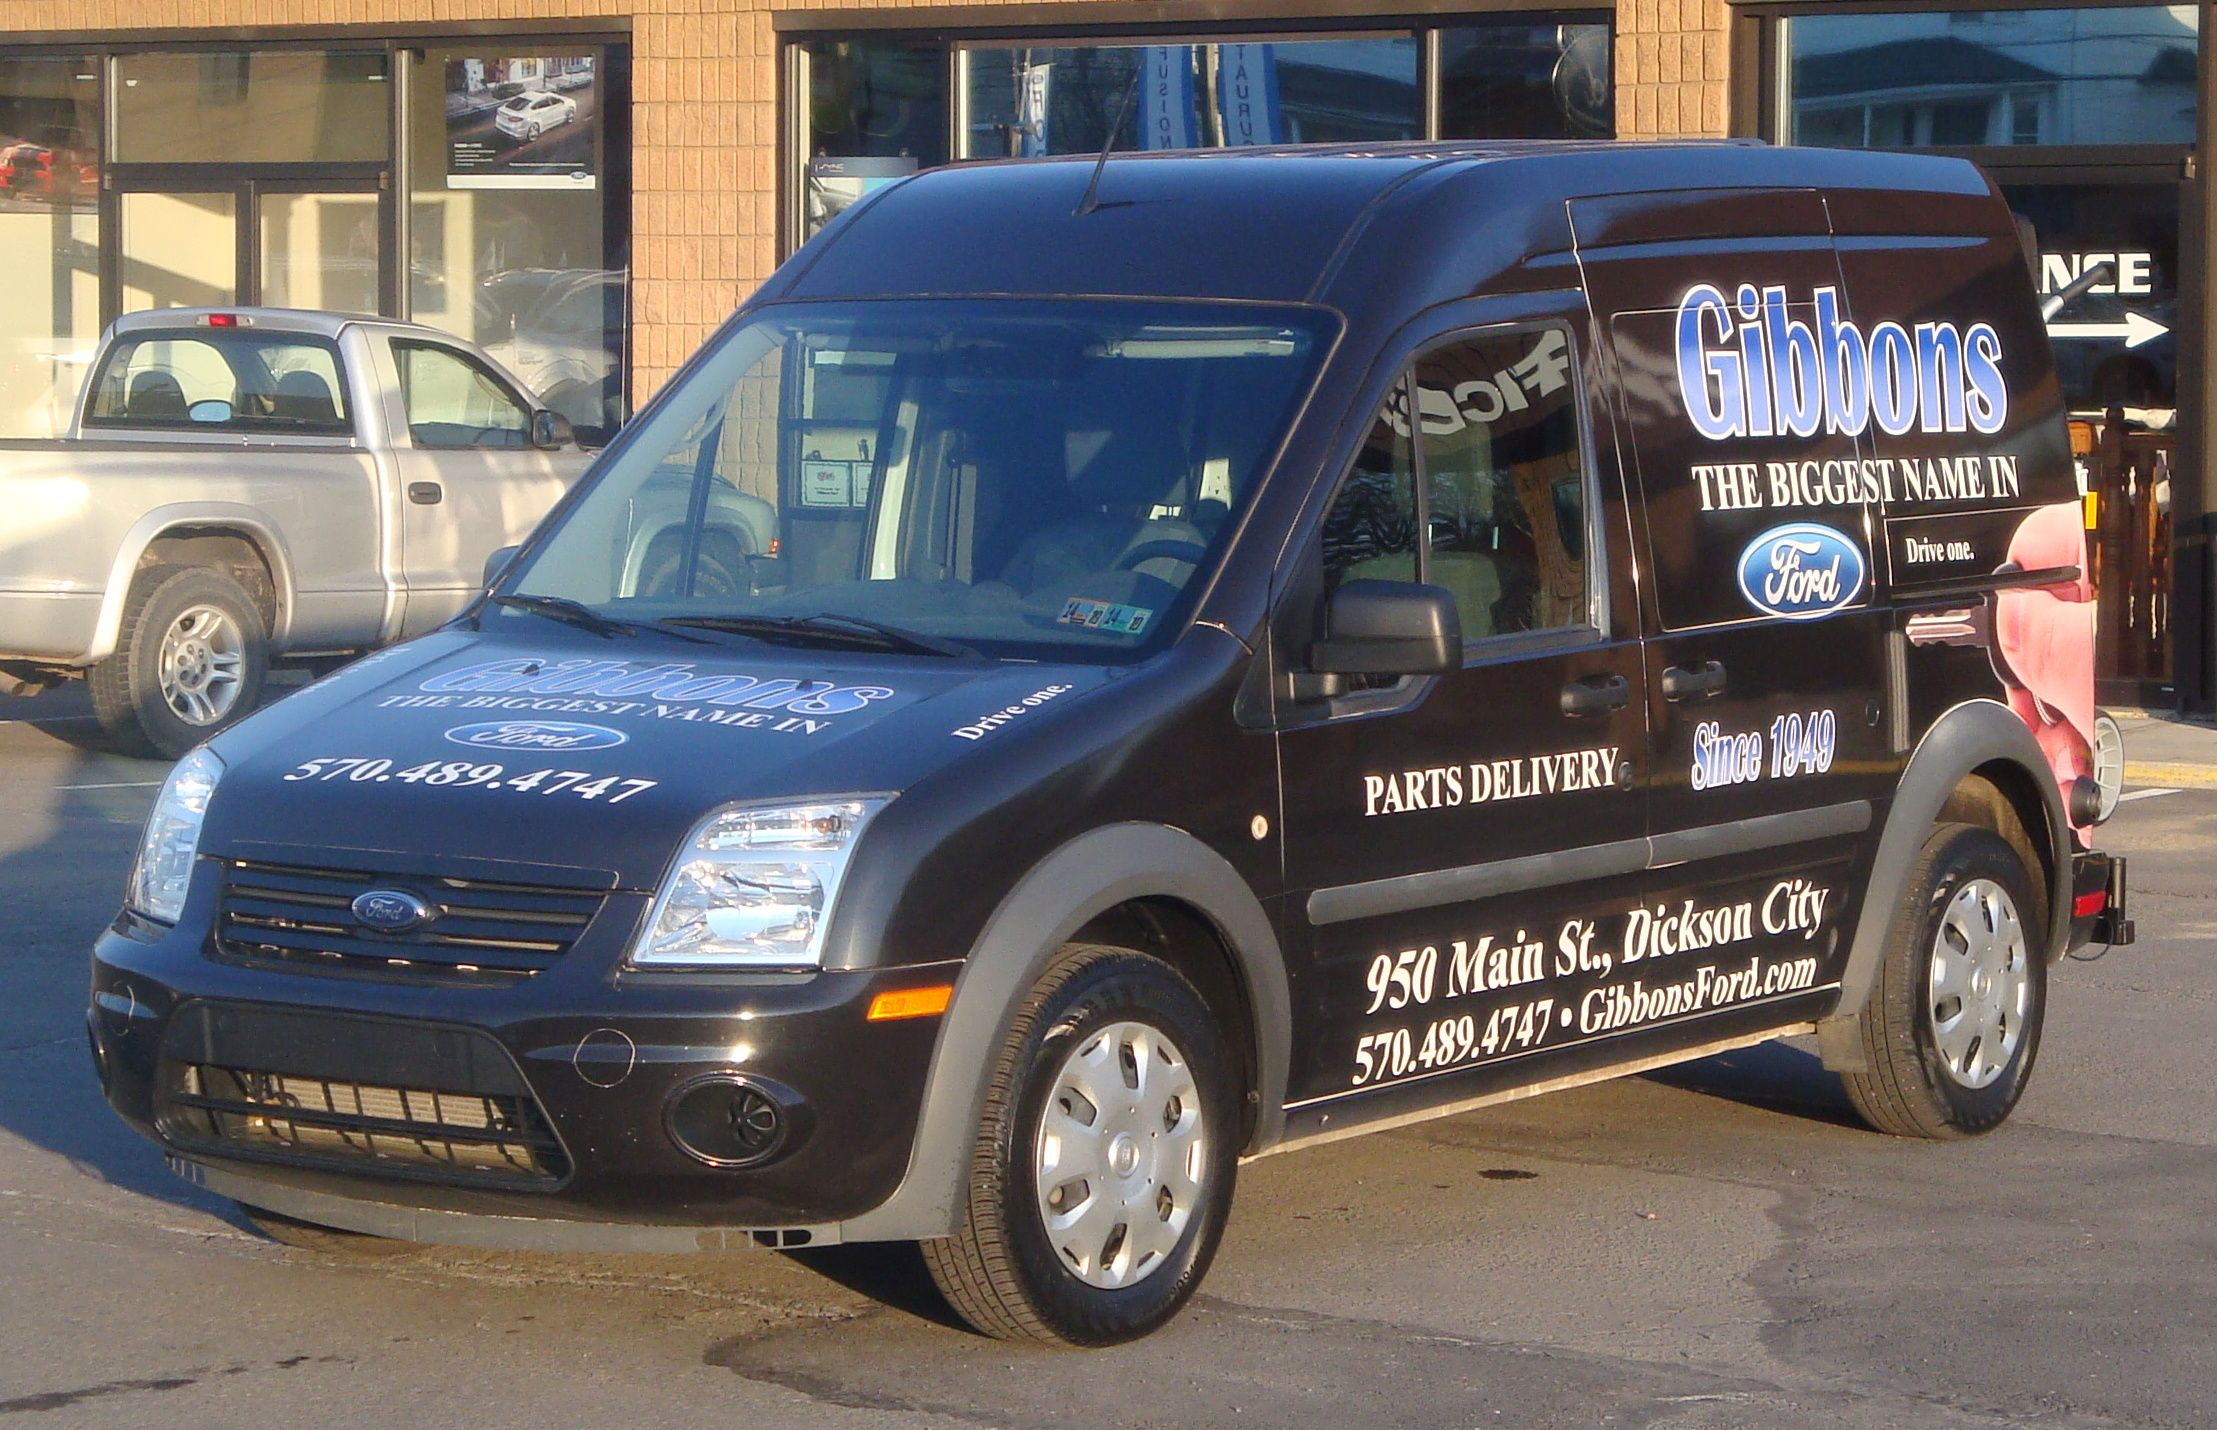 Gibbons ford transit connect parts delivery van with hts systems hts